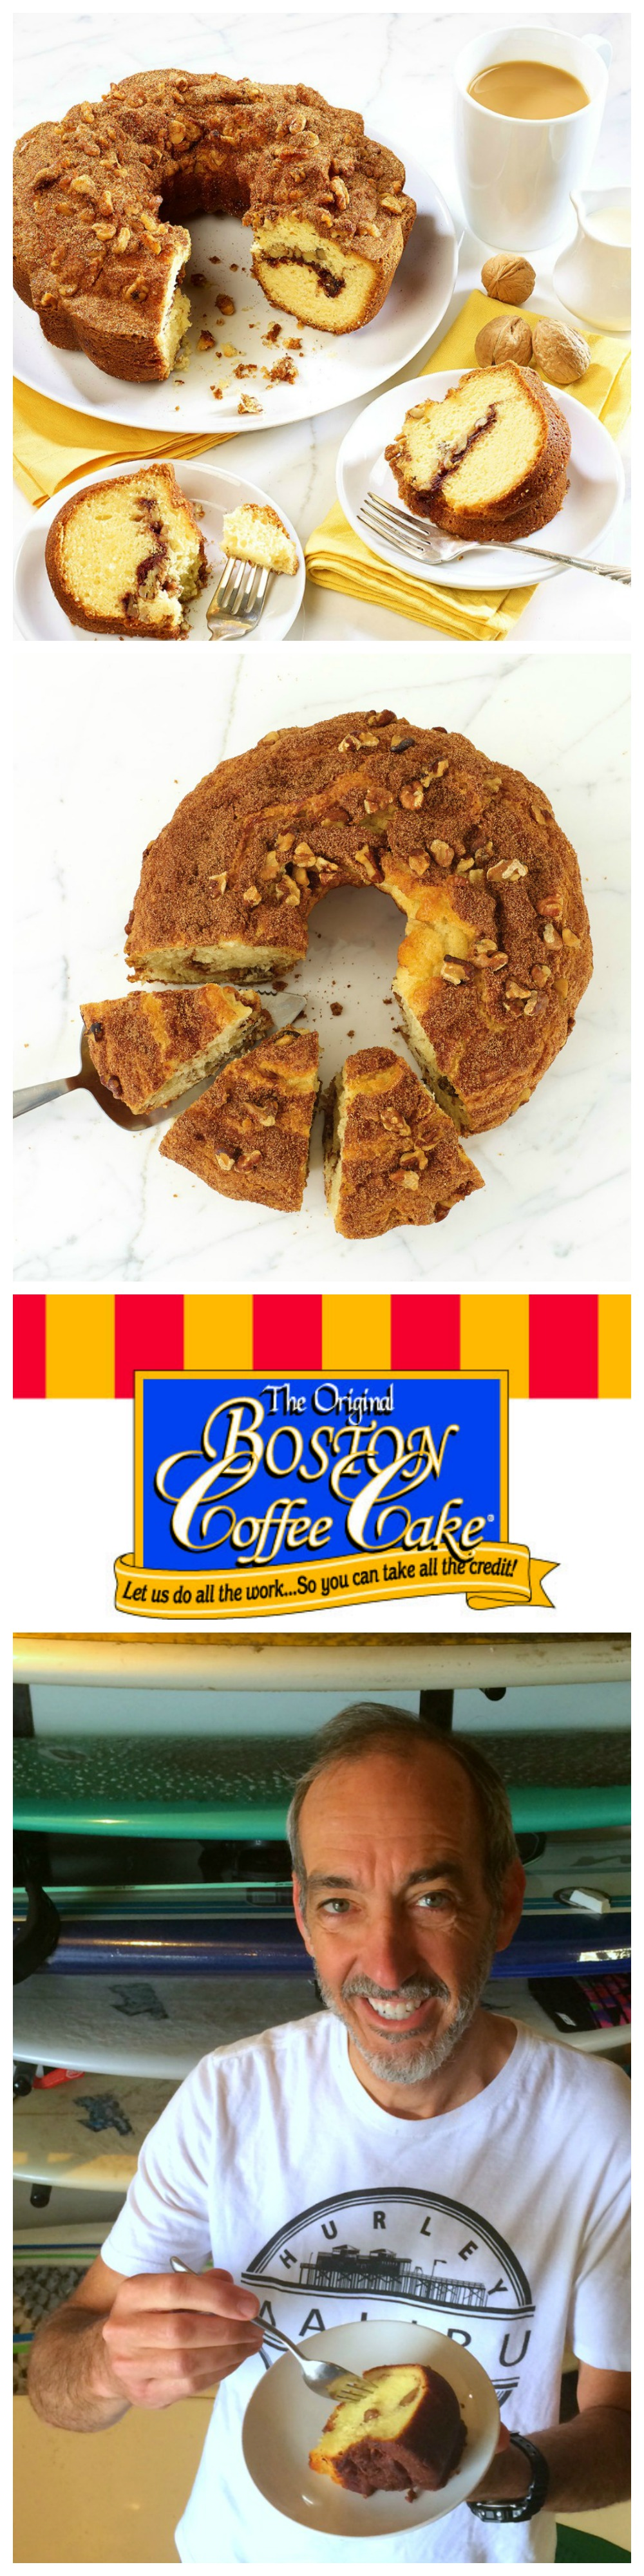 Boston Coffee Cake baked goods make a great thank-you gift